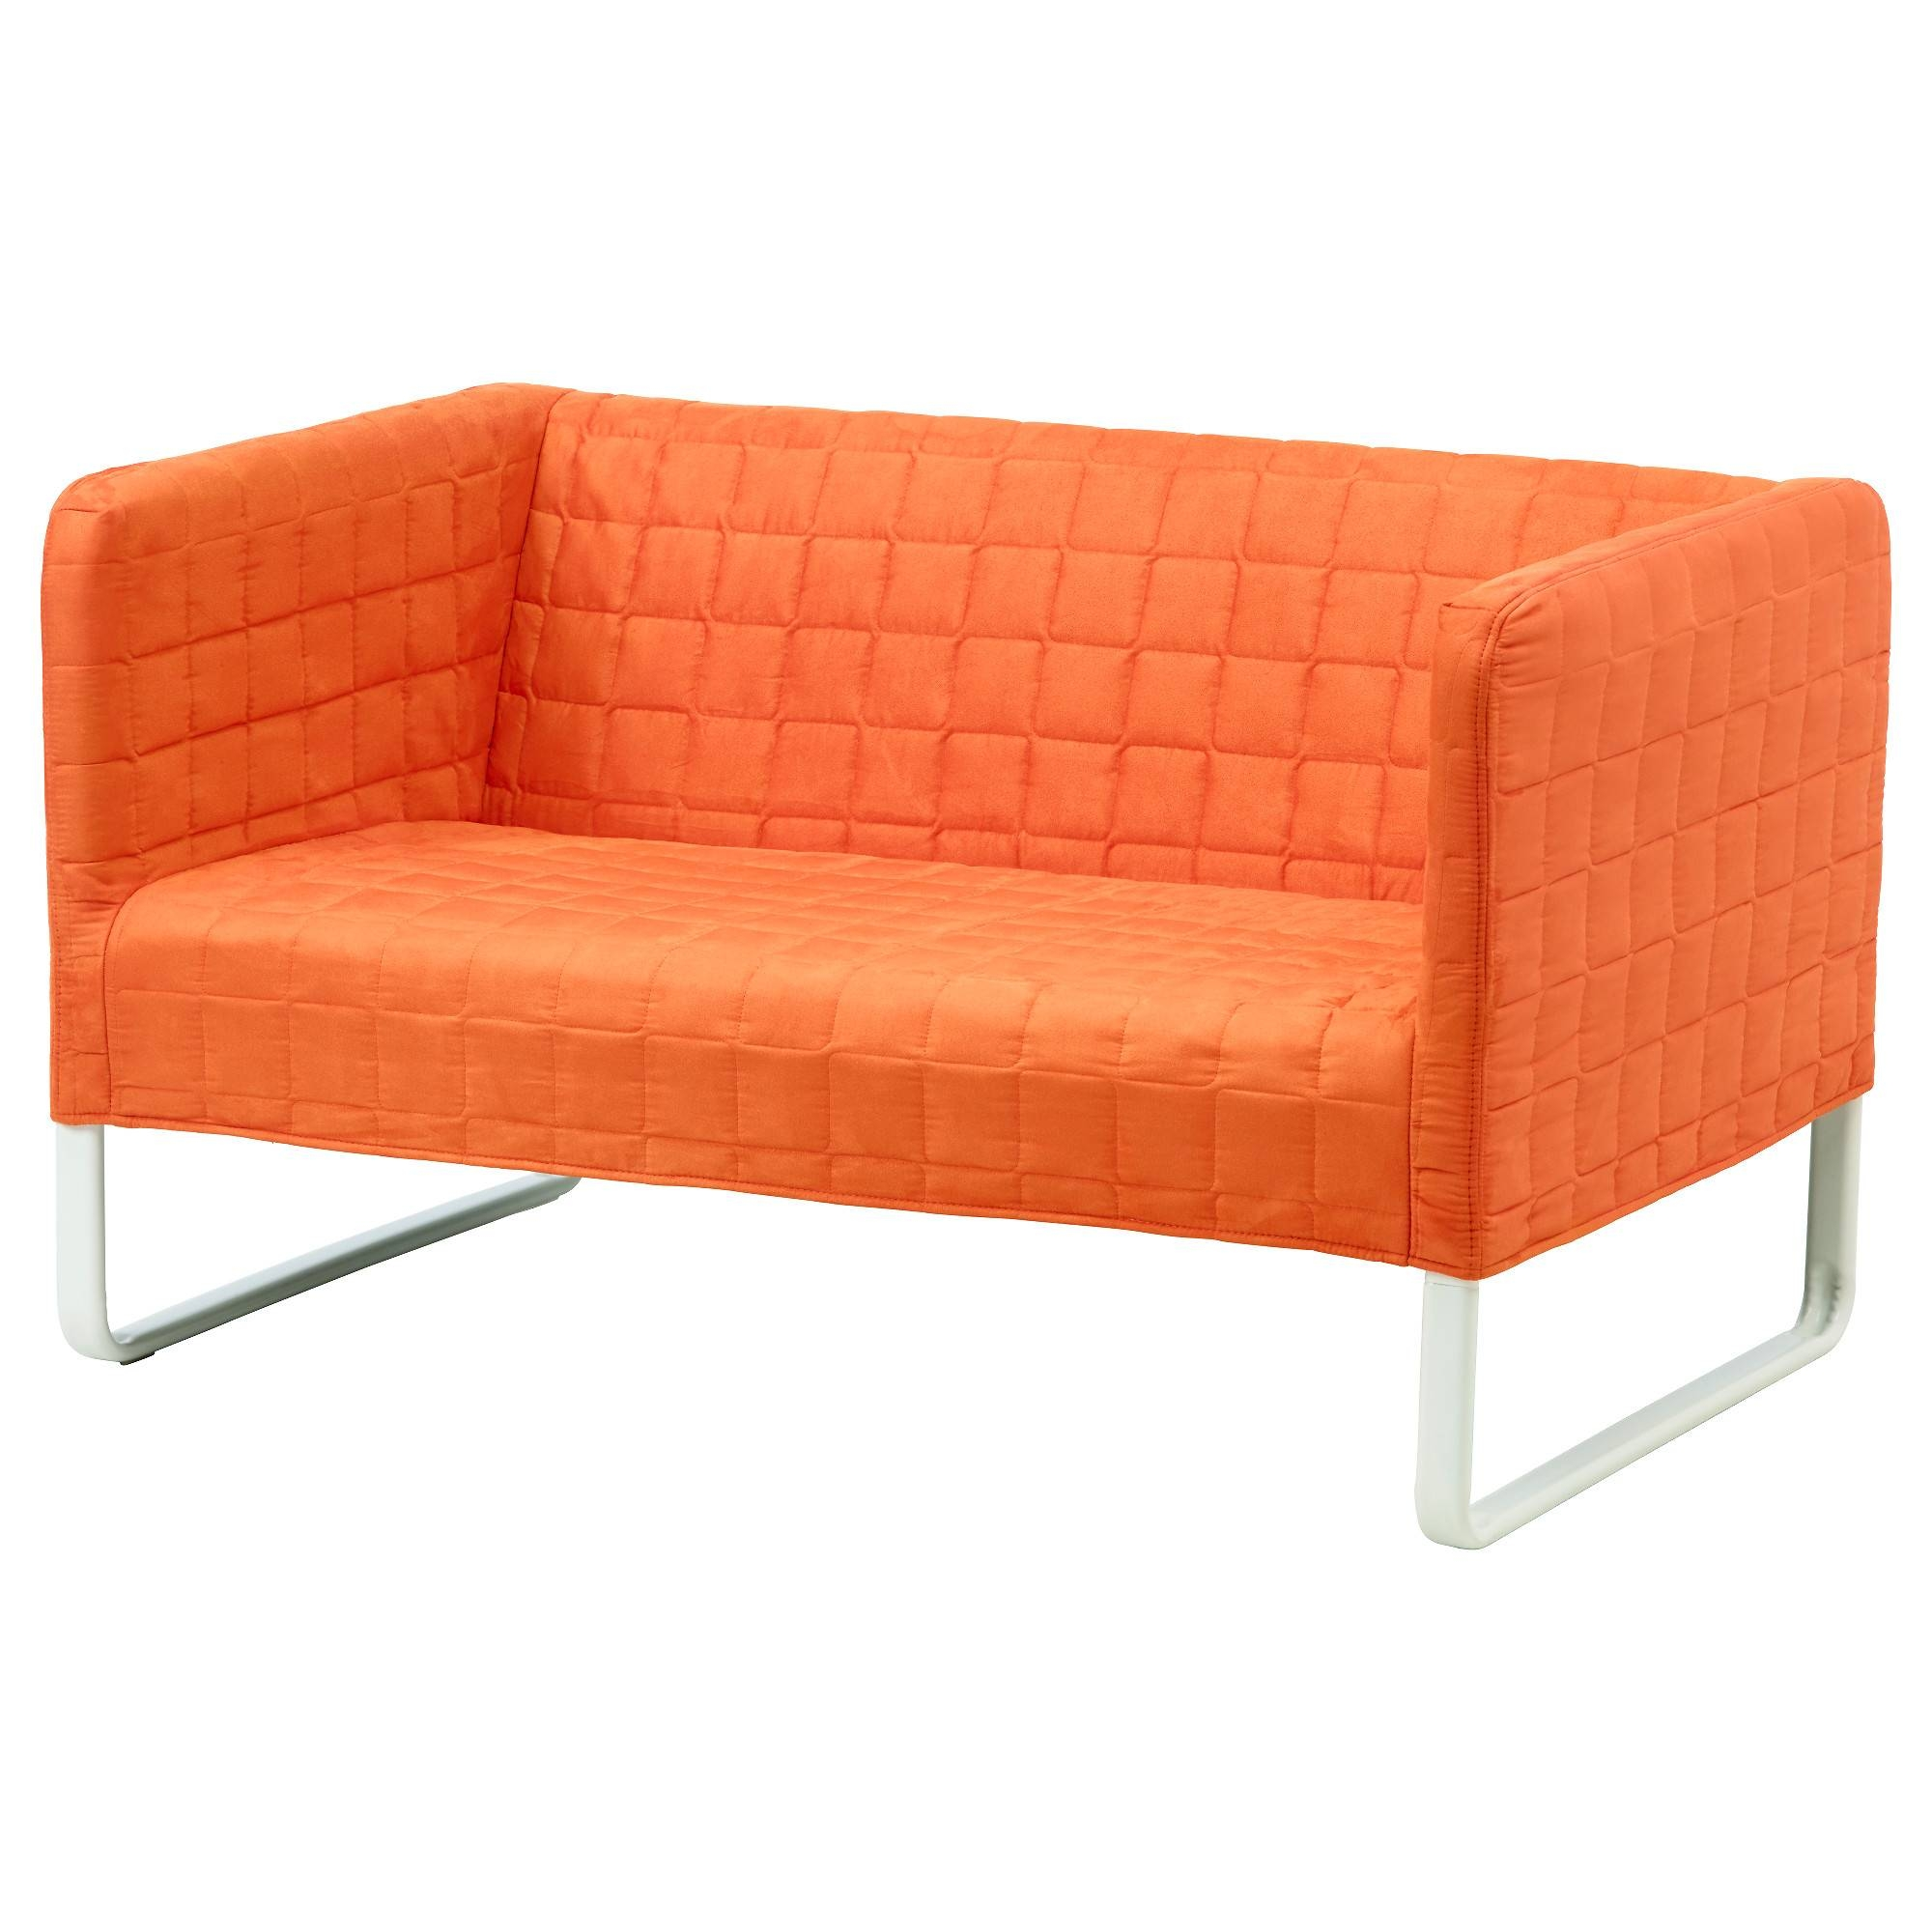 Small Sofa & 2 Seater Sofa | Ikea within Small Sofas and Chairs (Image 8 of 15)